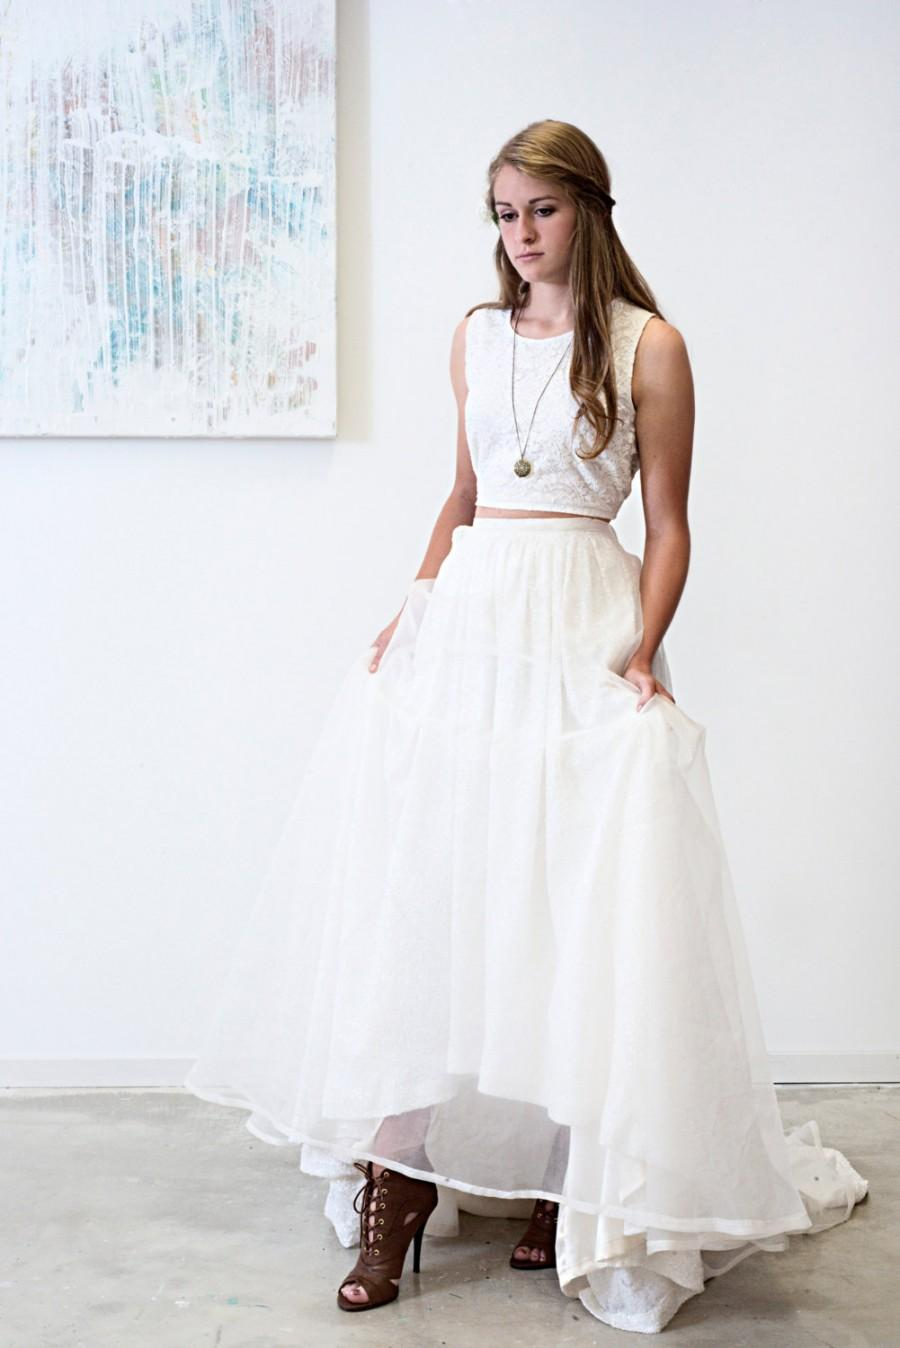 Em wedding dress boho tea dyed sleeveless tie back lace crop em wedding dress boho tea dyed sleeveless tie back lace crop top with high waisted sequin and organza skirt high low illusion hem ombrellifo Gallery